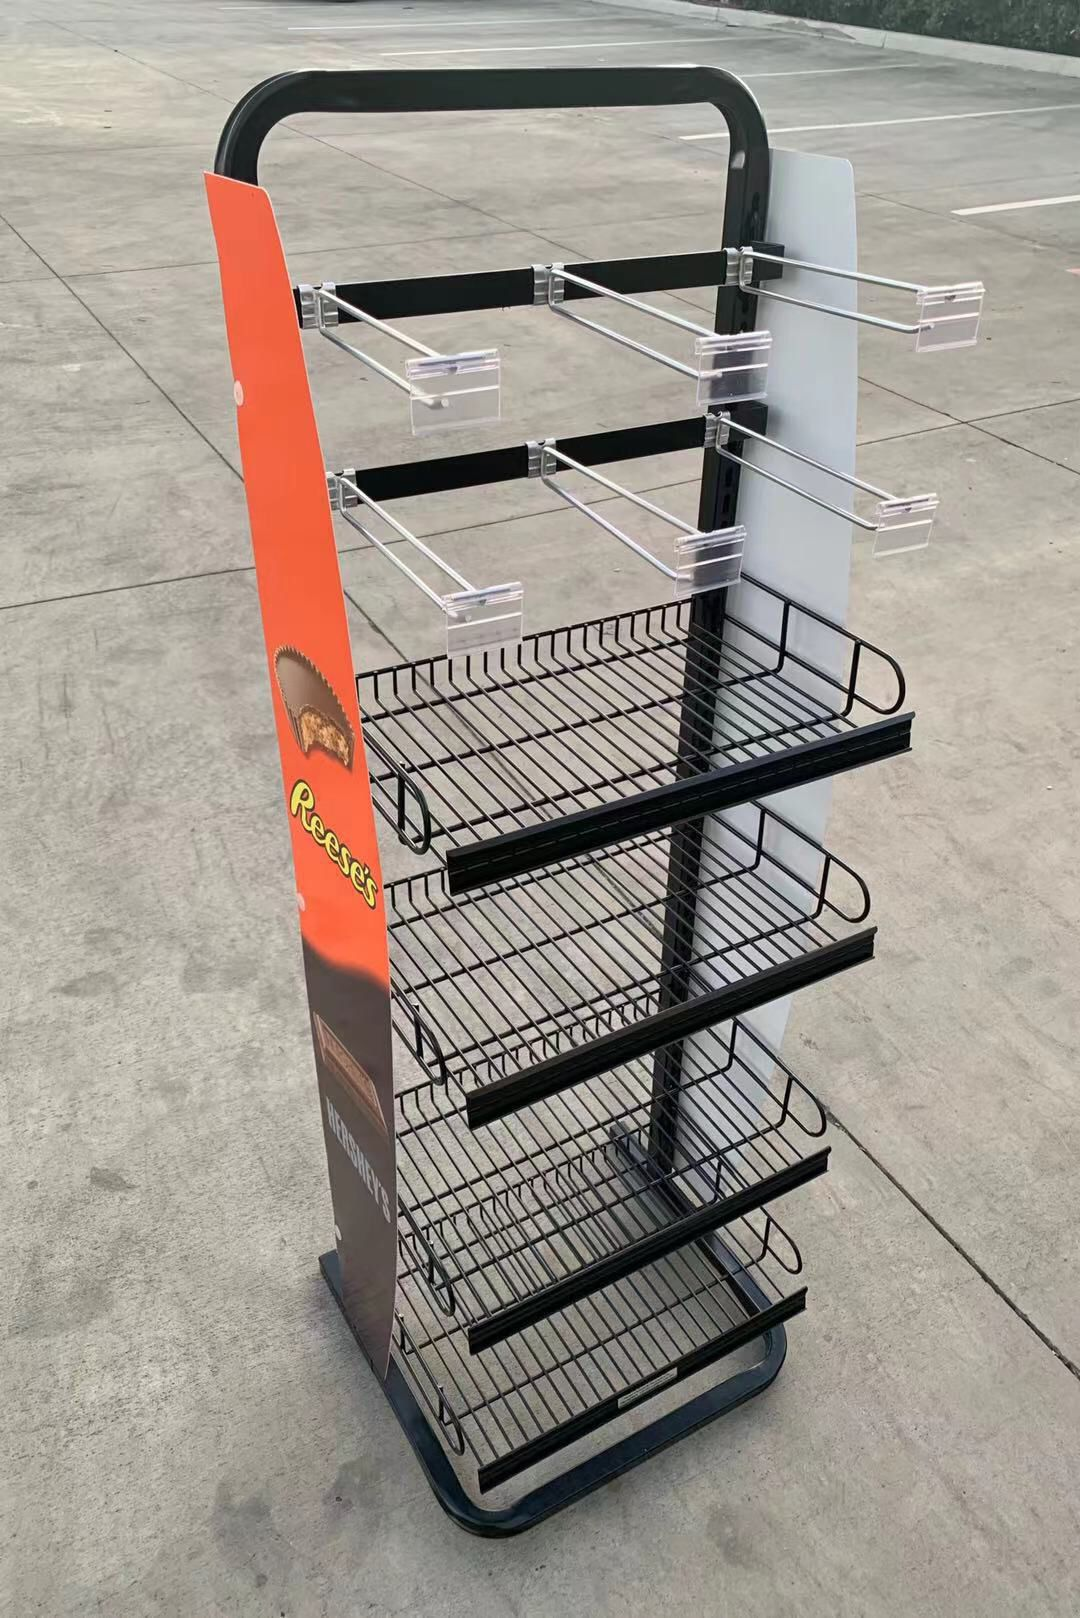 NEW 17x16x52 Inch Tall Commercial Retail Conveninece Store Product Candy Snack Rack Merchandise Shelf swapmeet restaurant store